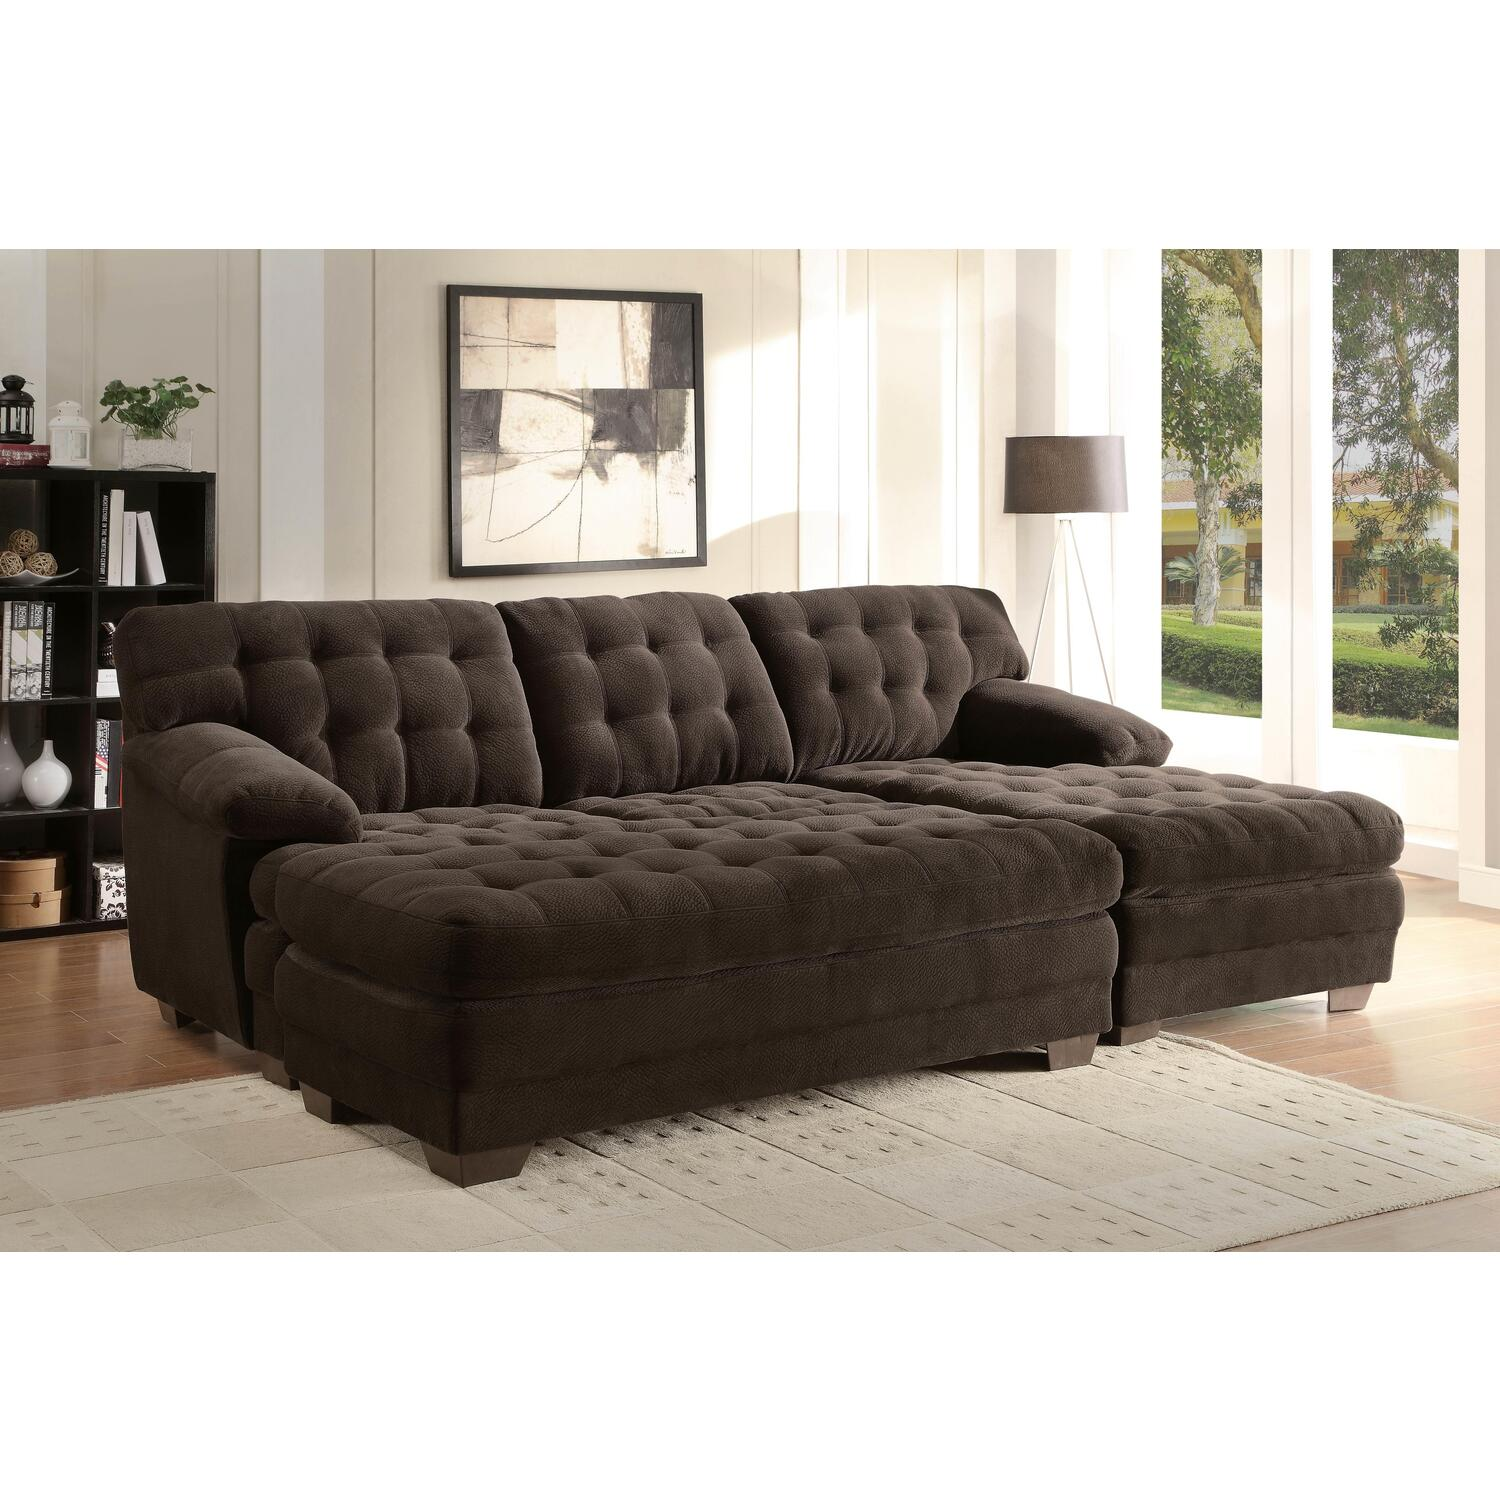 Extra wide sectional sofas with chaise for Big sofa technologies